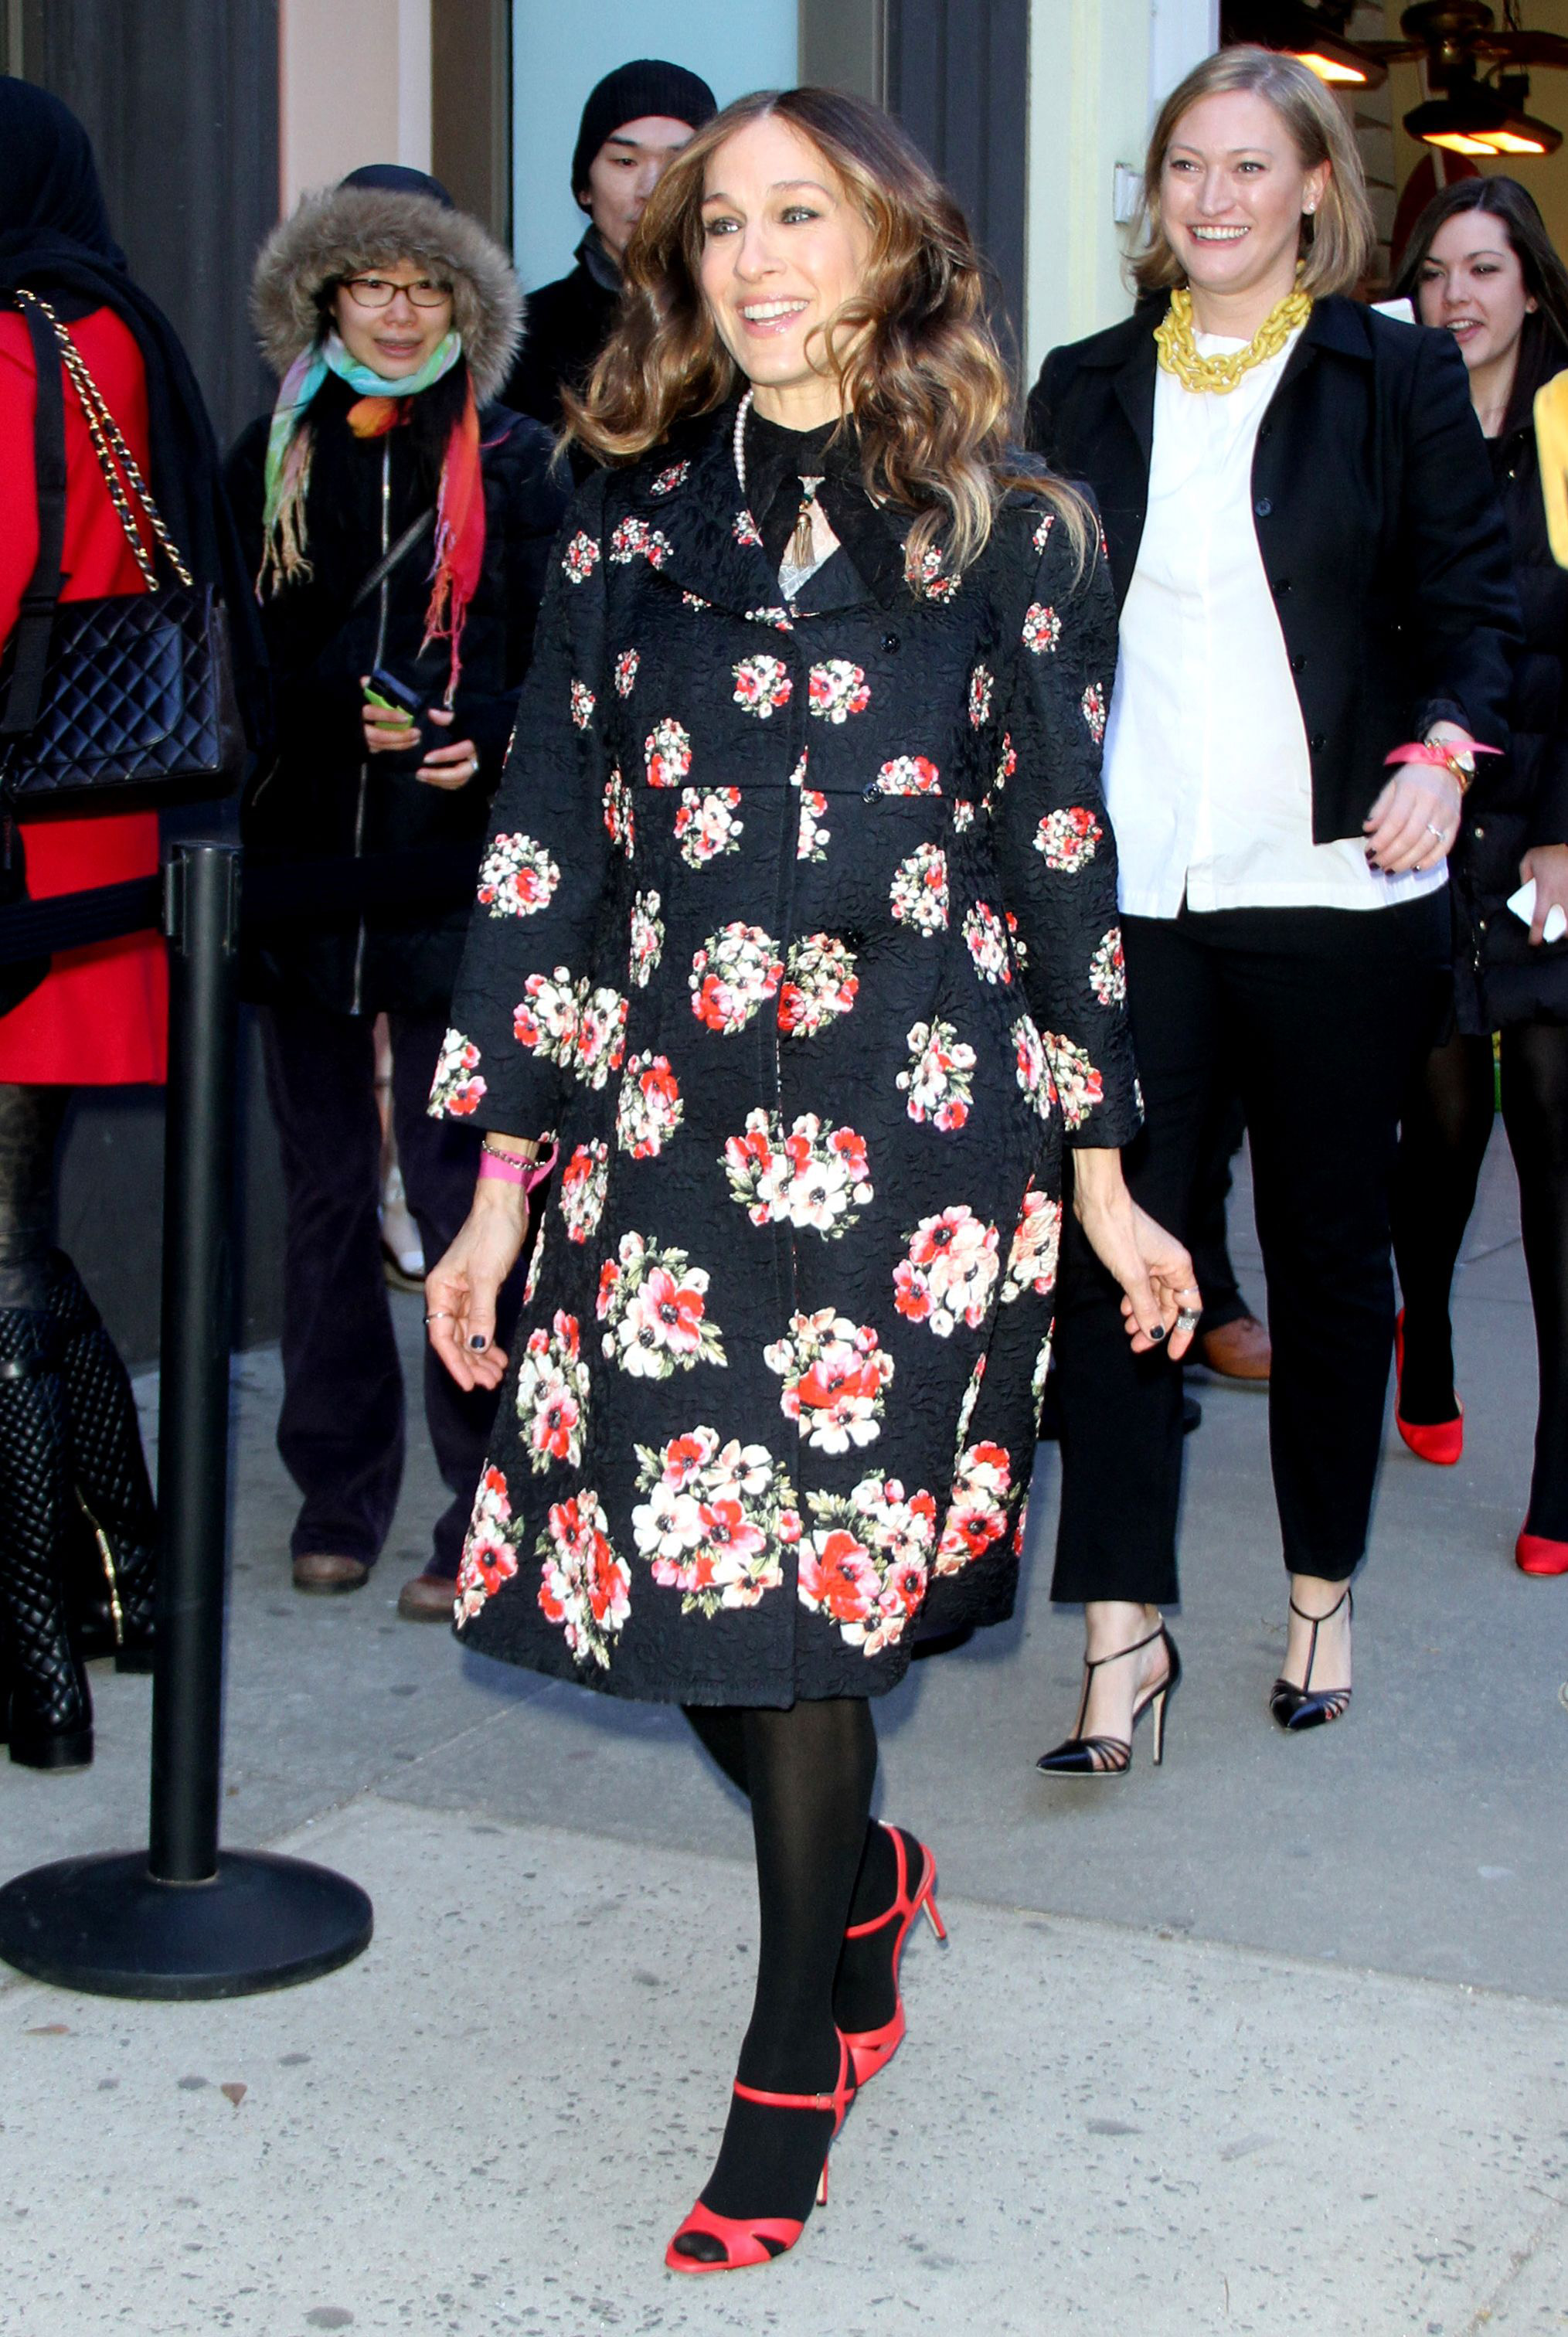 Nordstrom SJP Collection pop up shop opening, New York, America - 28 Feb 2014